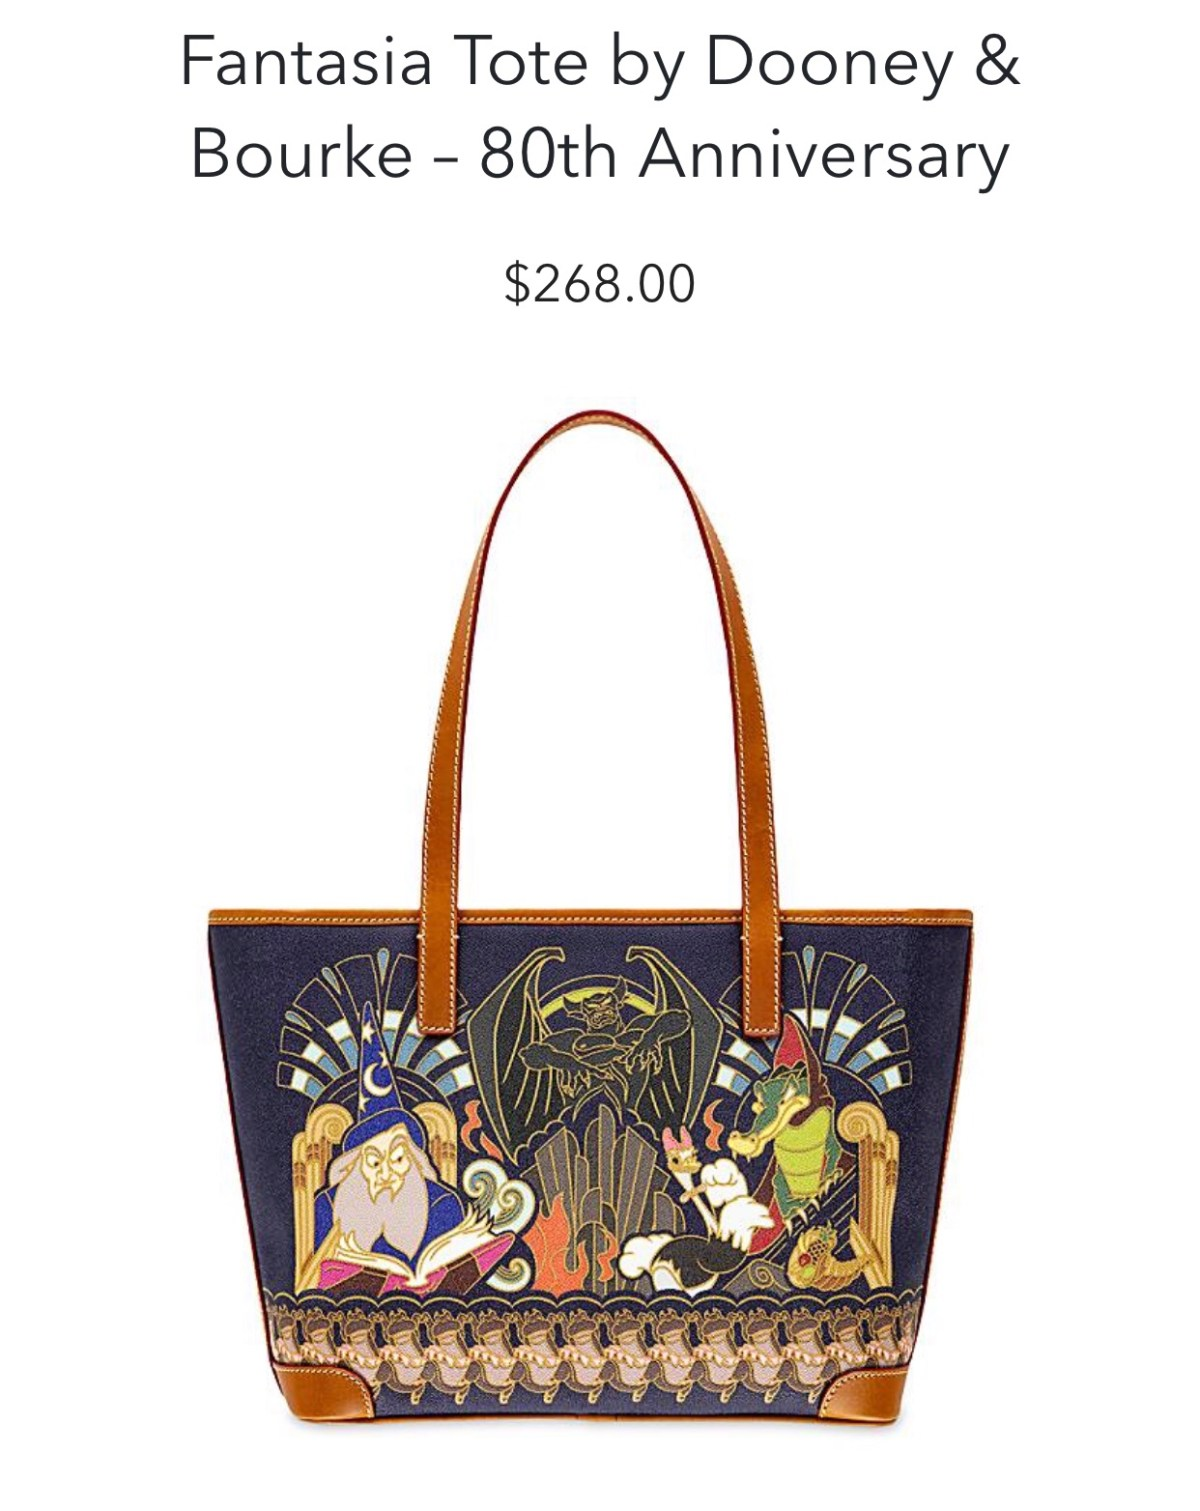 Disney Dooney & Bourke Shopper Fantasia 80th Anniversary bag back view